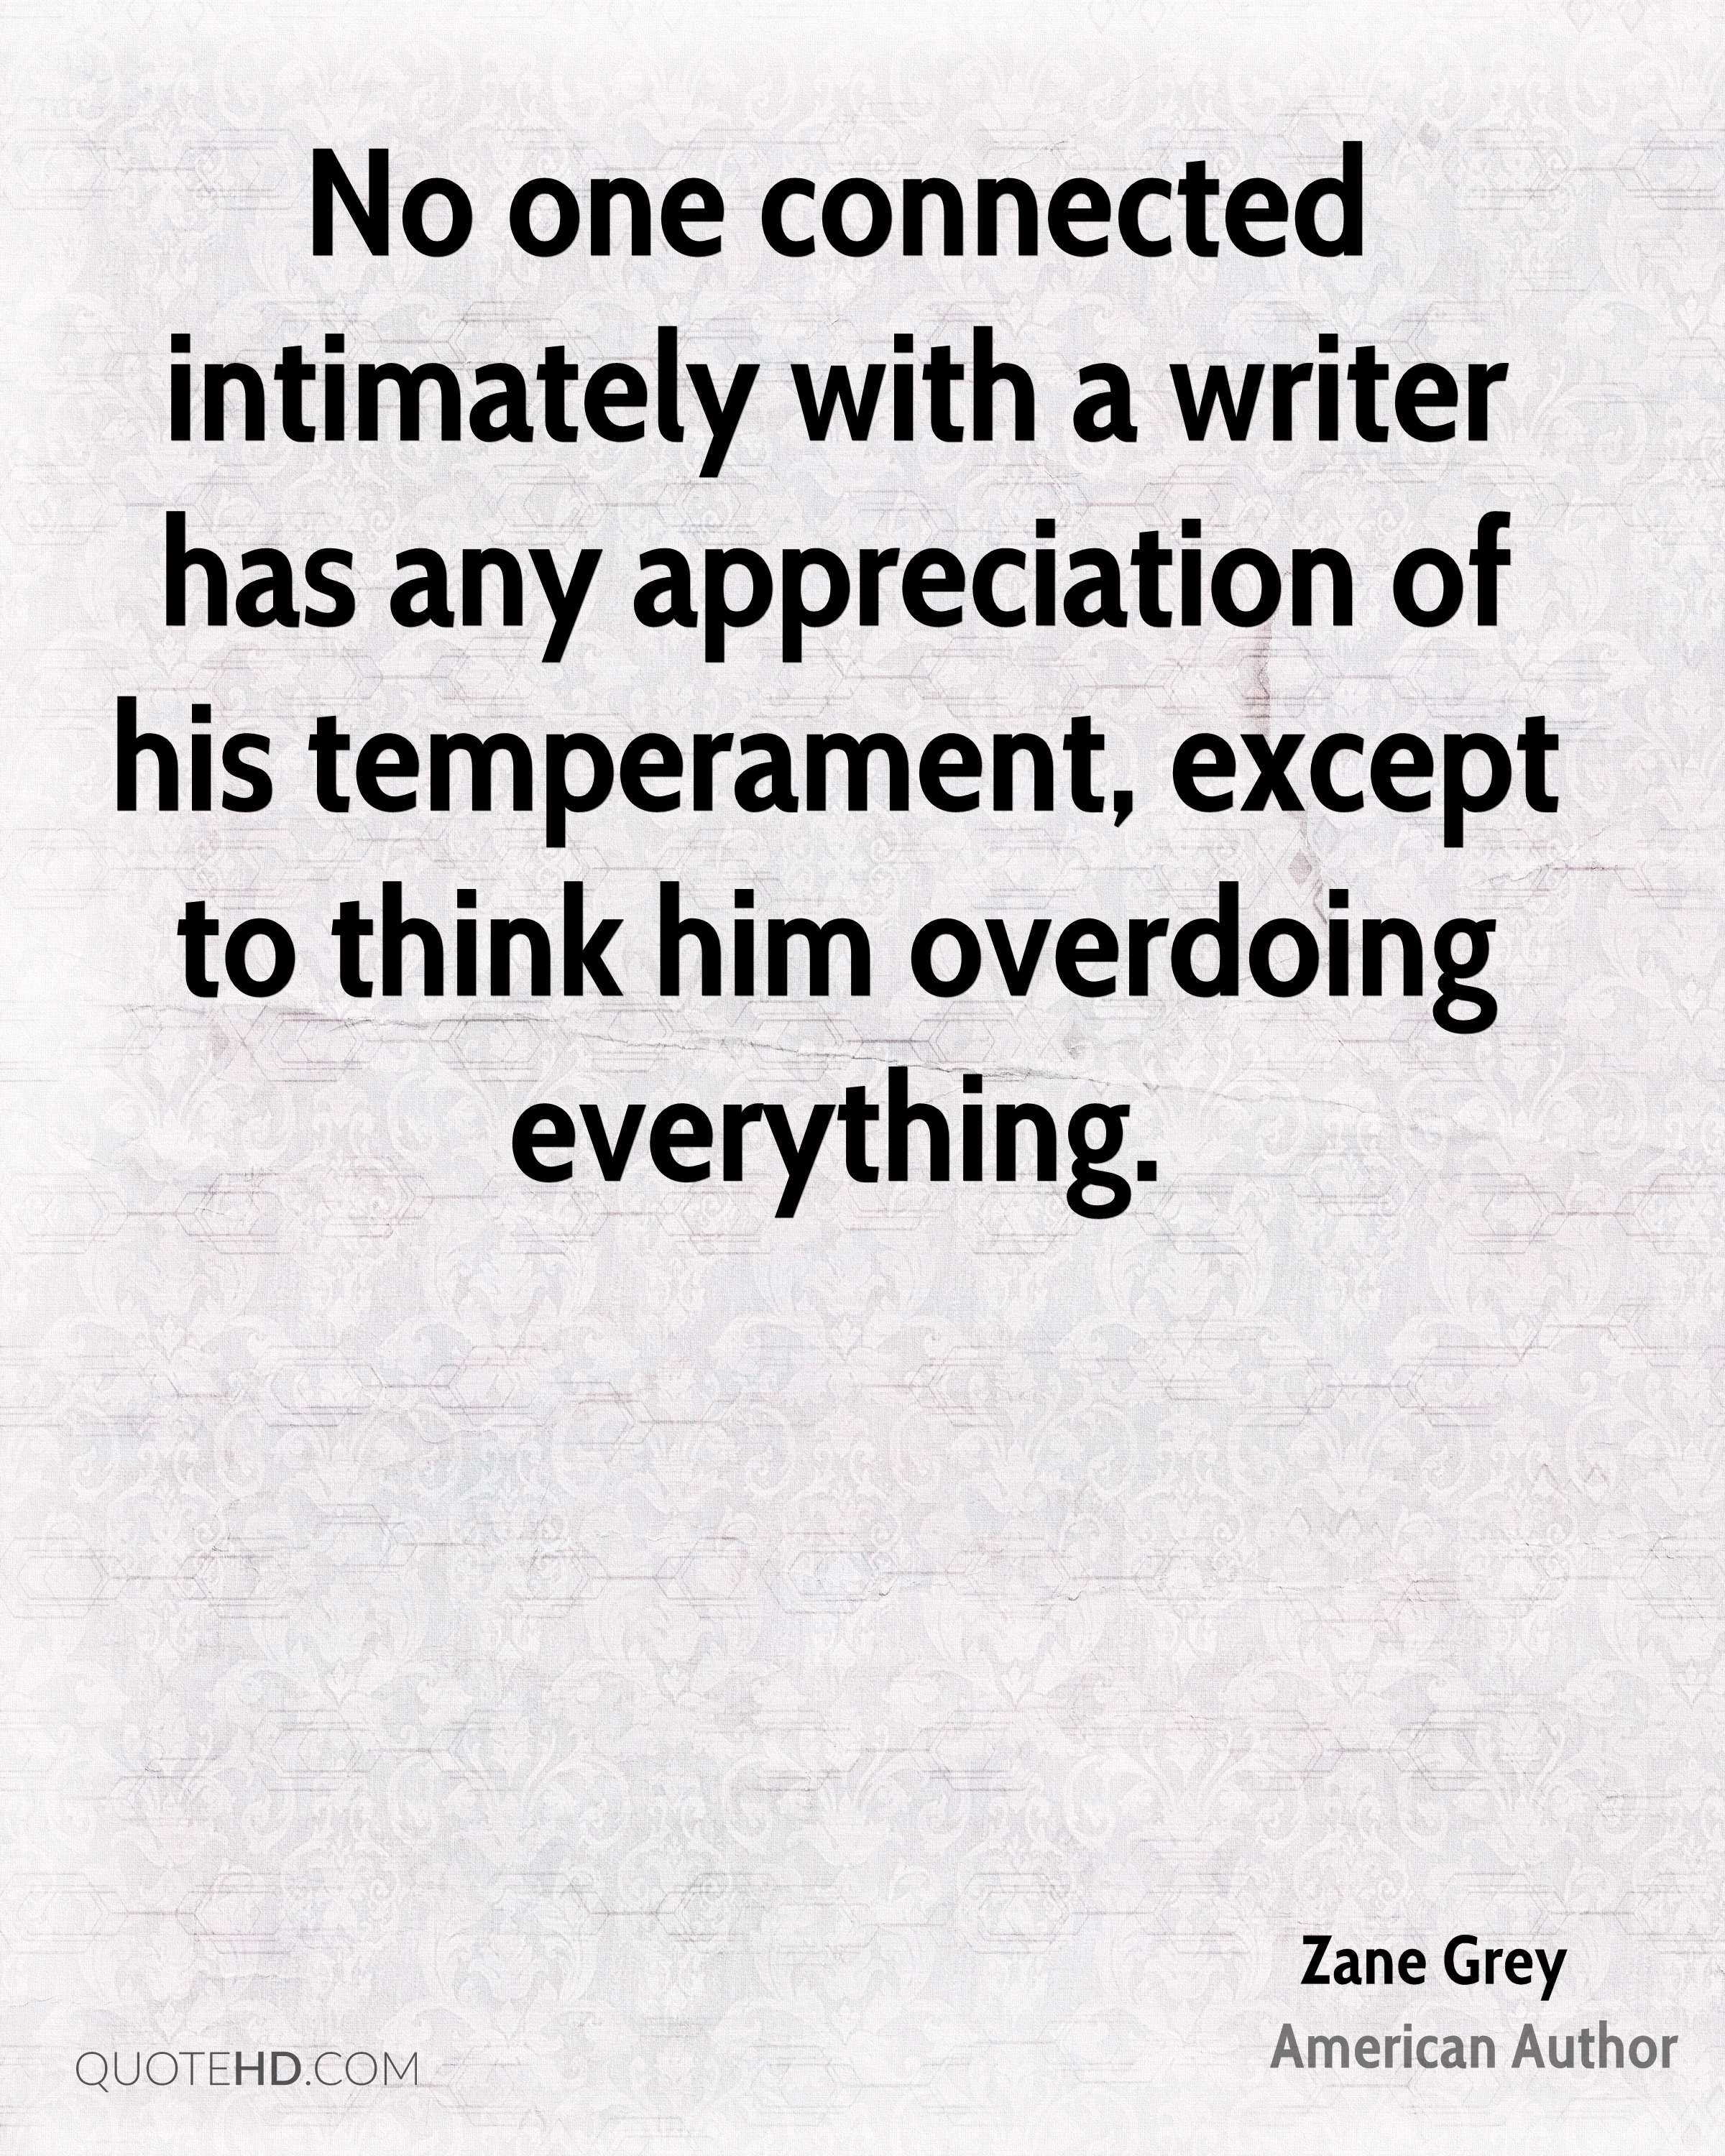 No one connected intimately with a writer has any appreciation of his temperament, except to think him overdoing everything.